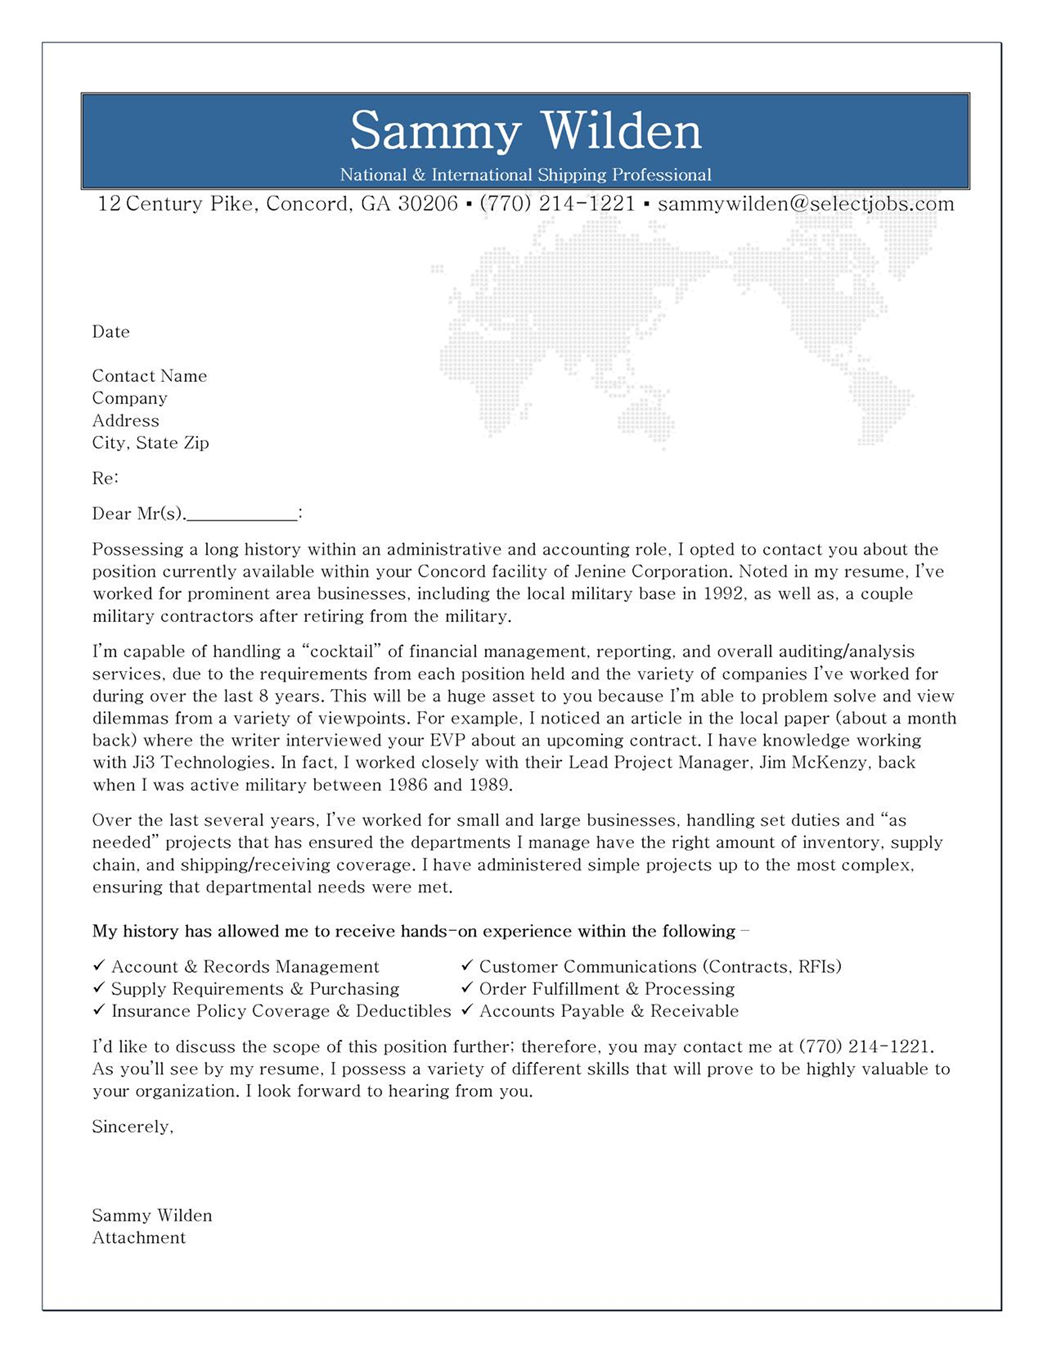 cover letter example for shipping receiving professional - Writing A Professional Cover Letter